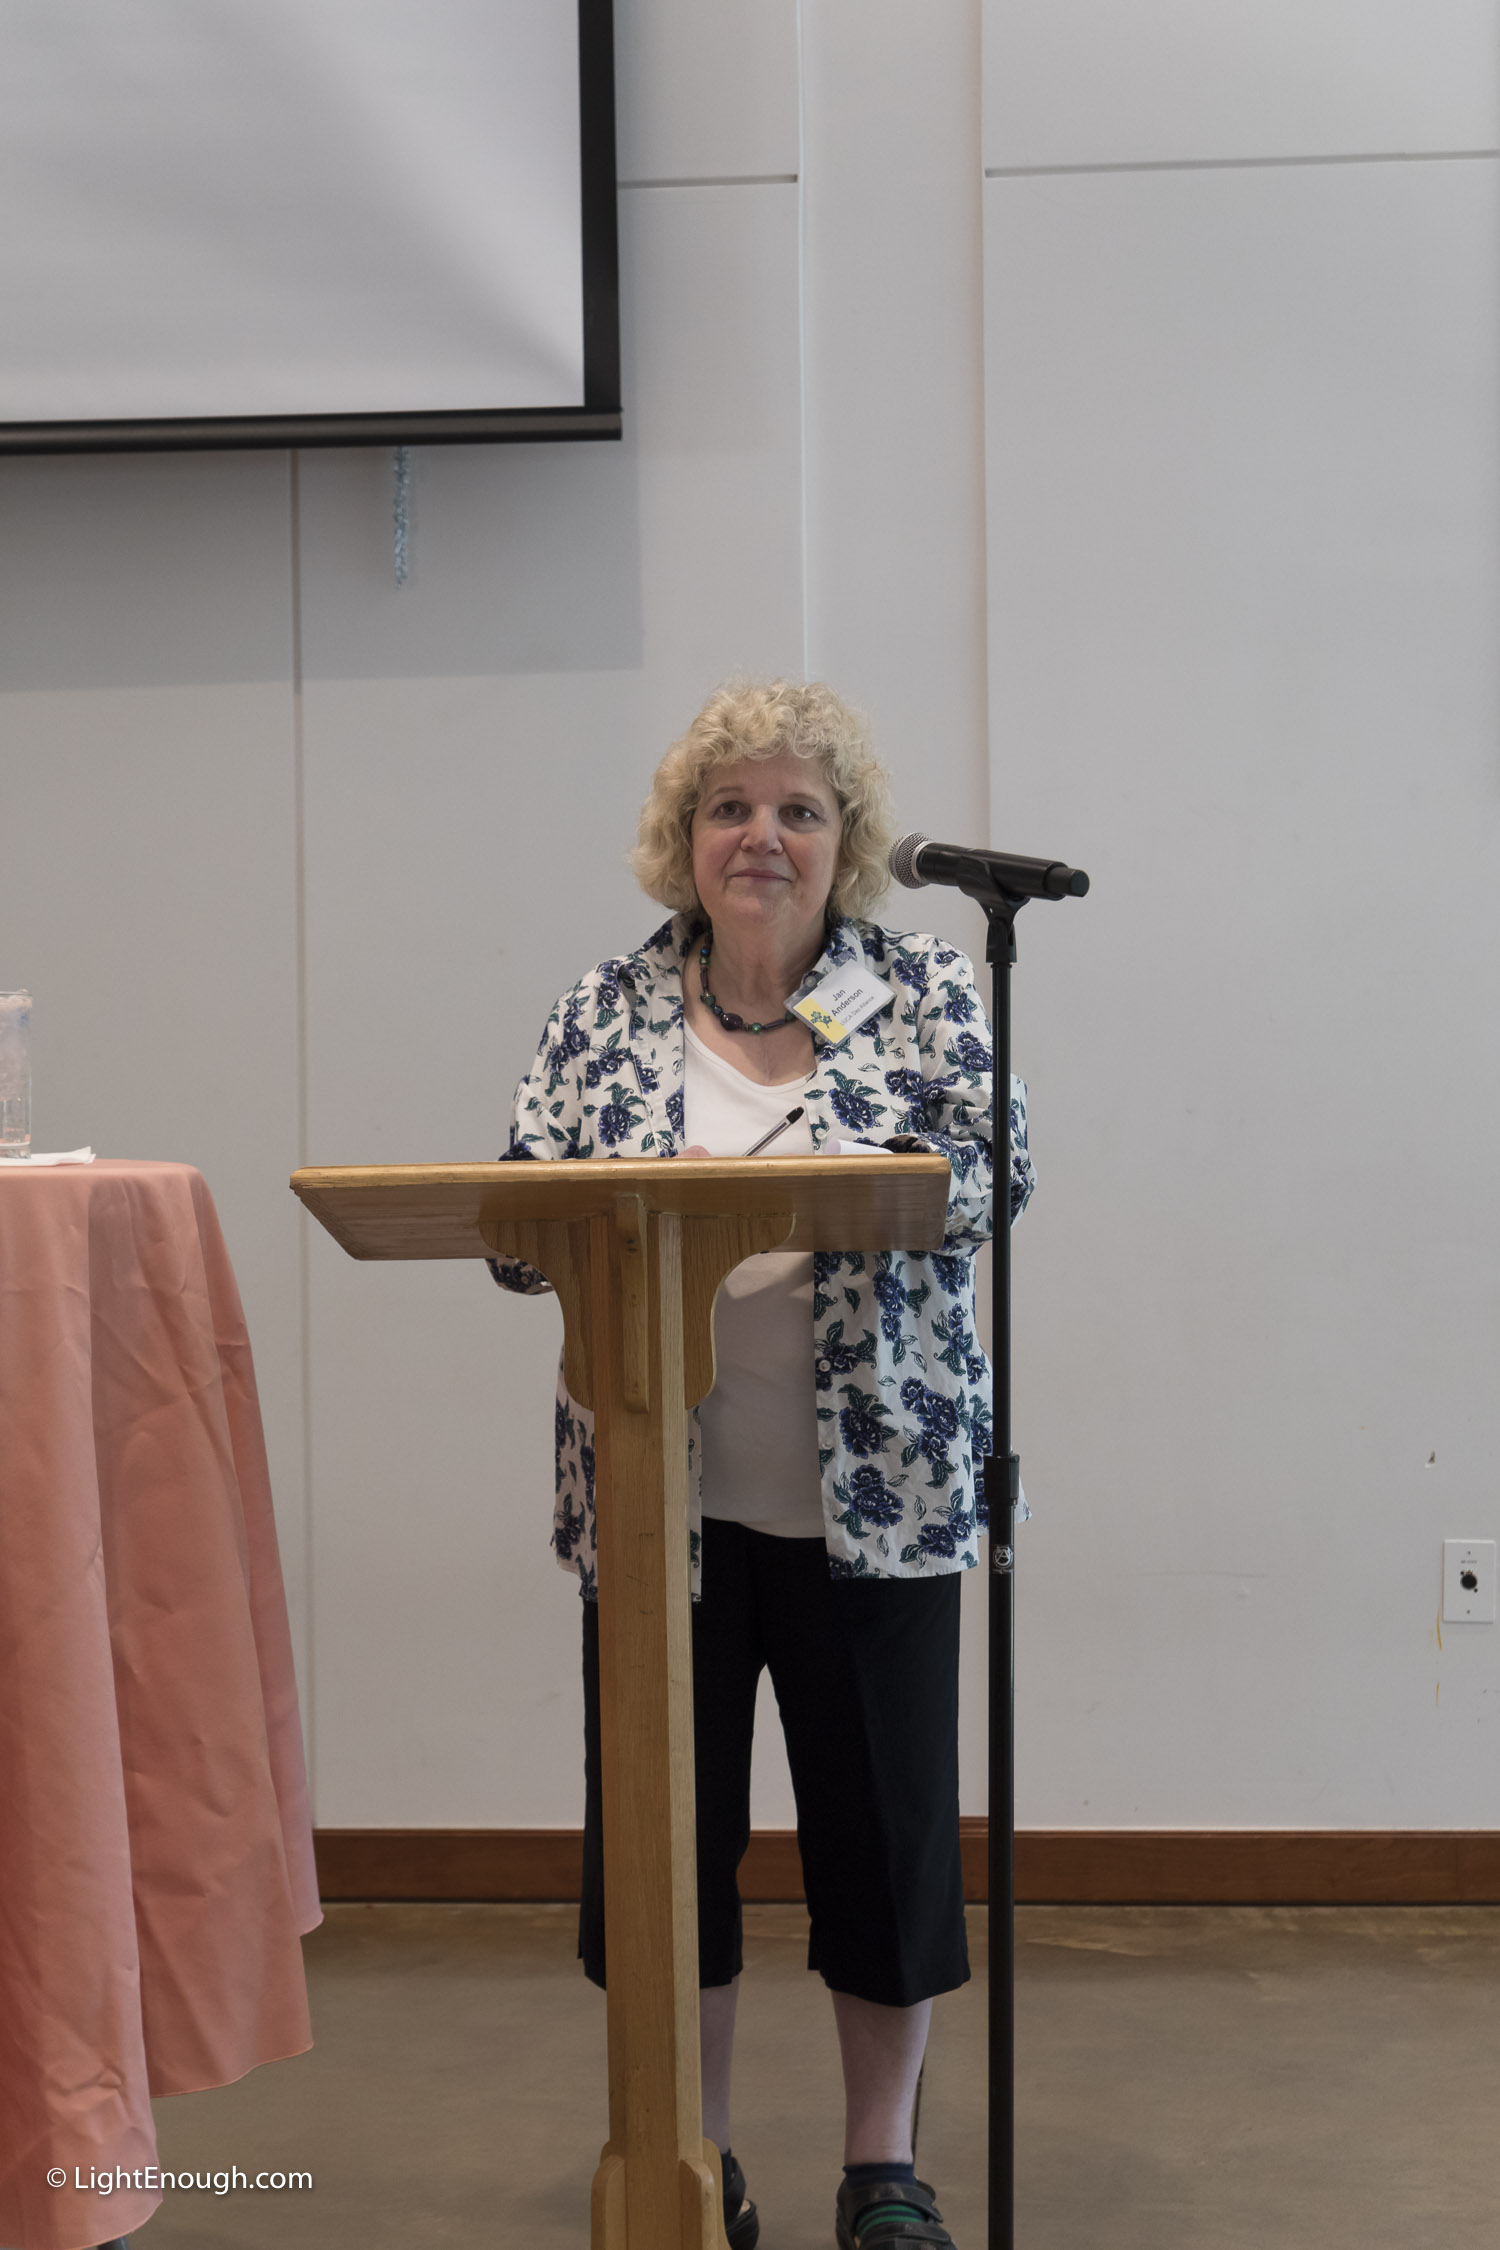 Jan Anderson at the June 2017 meeting of the UUCA Day Alliance. Allen Keiswetter speaker. Photos by John St Hilaire / LightEnough.com